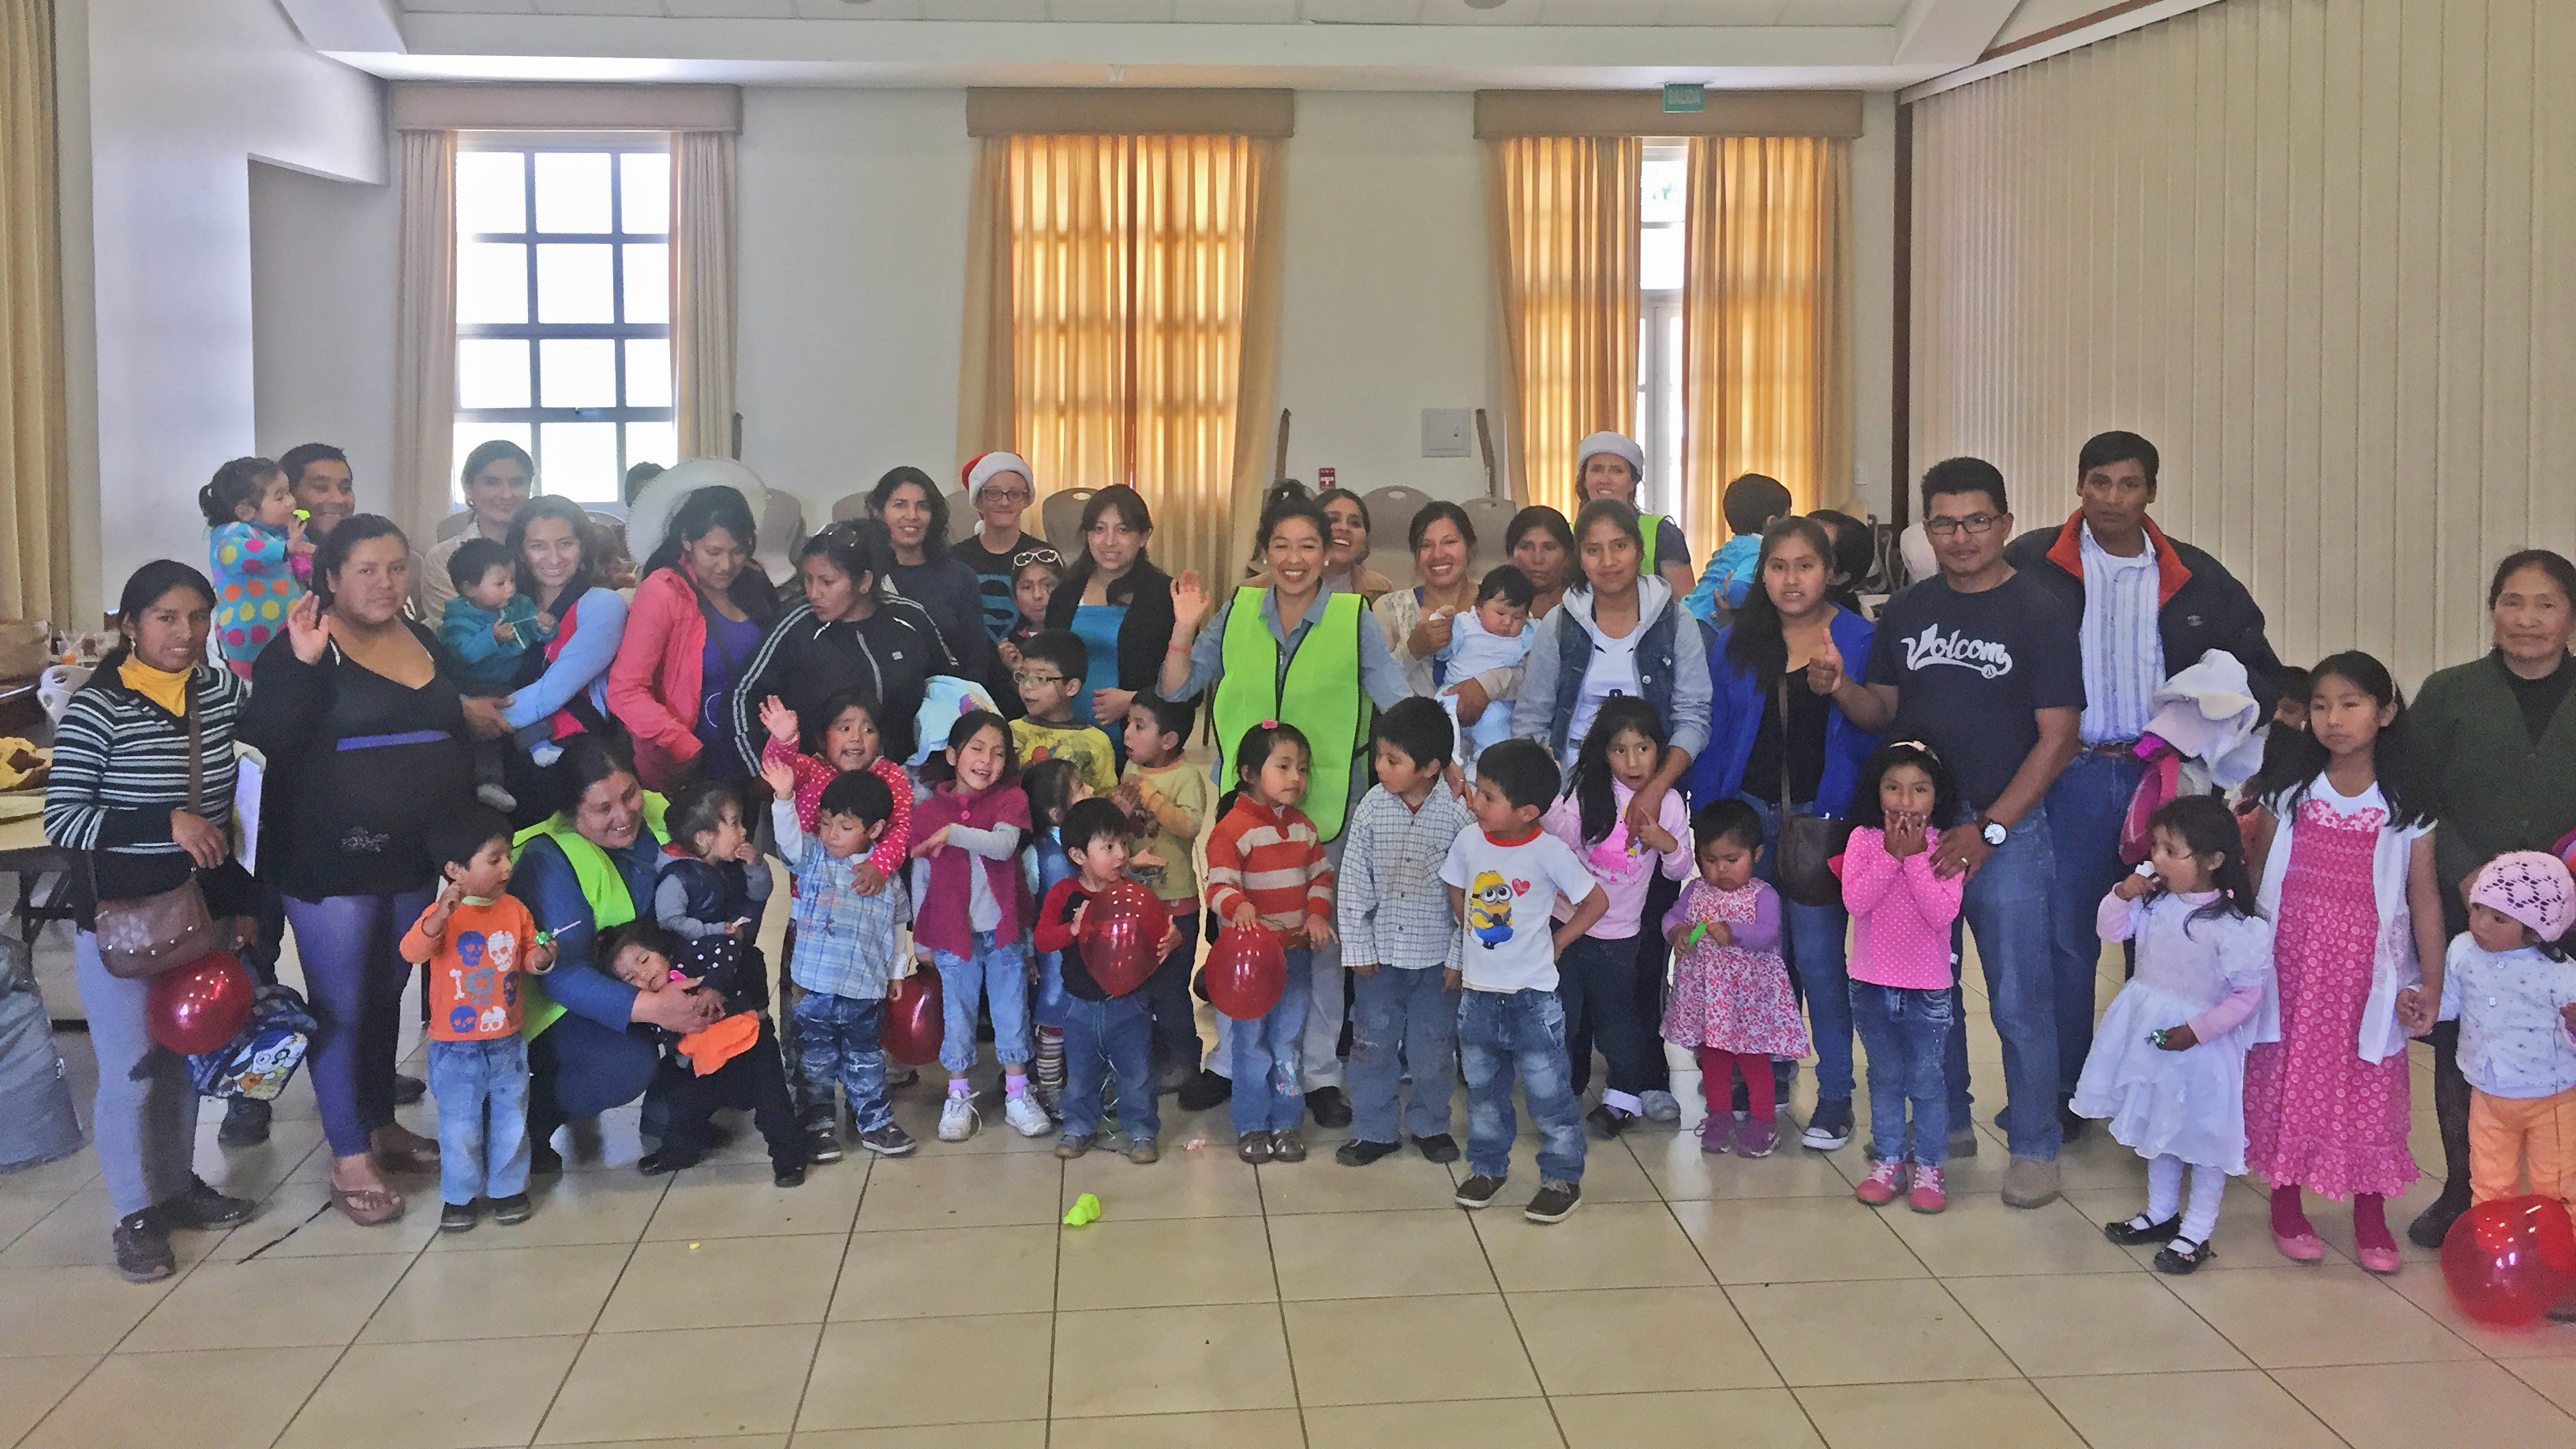 Cusco-Christmas-party-group-photo-after-screening-cropped